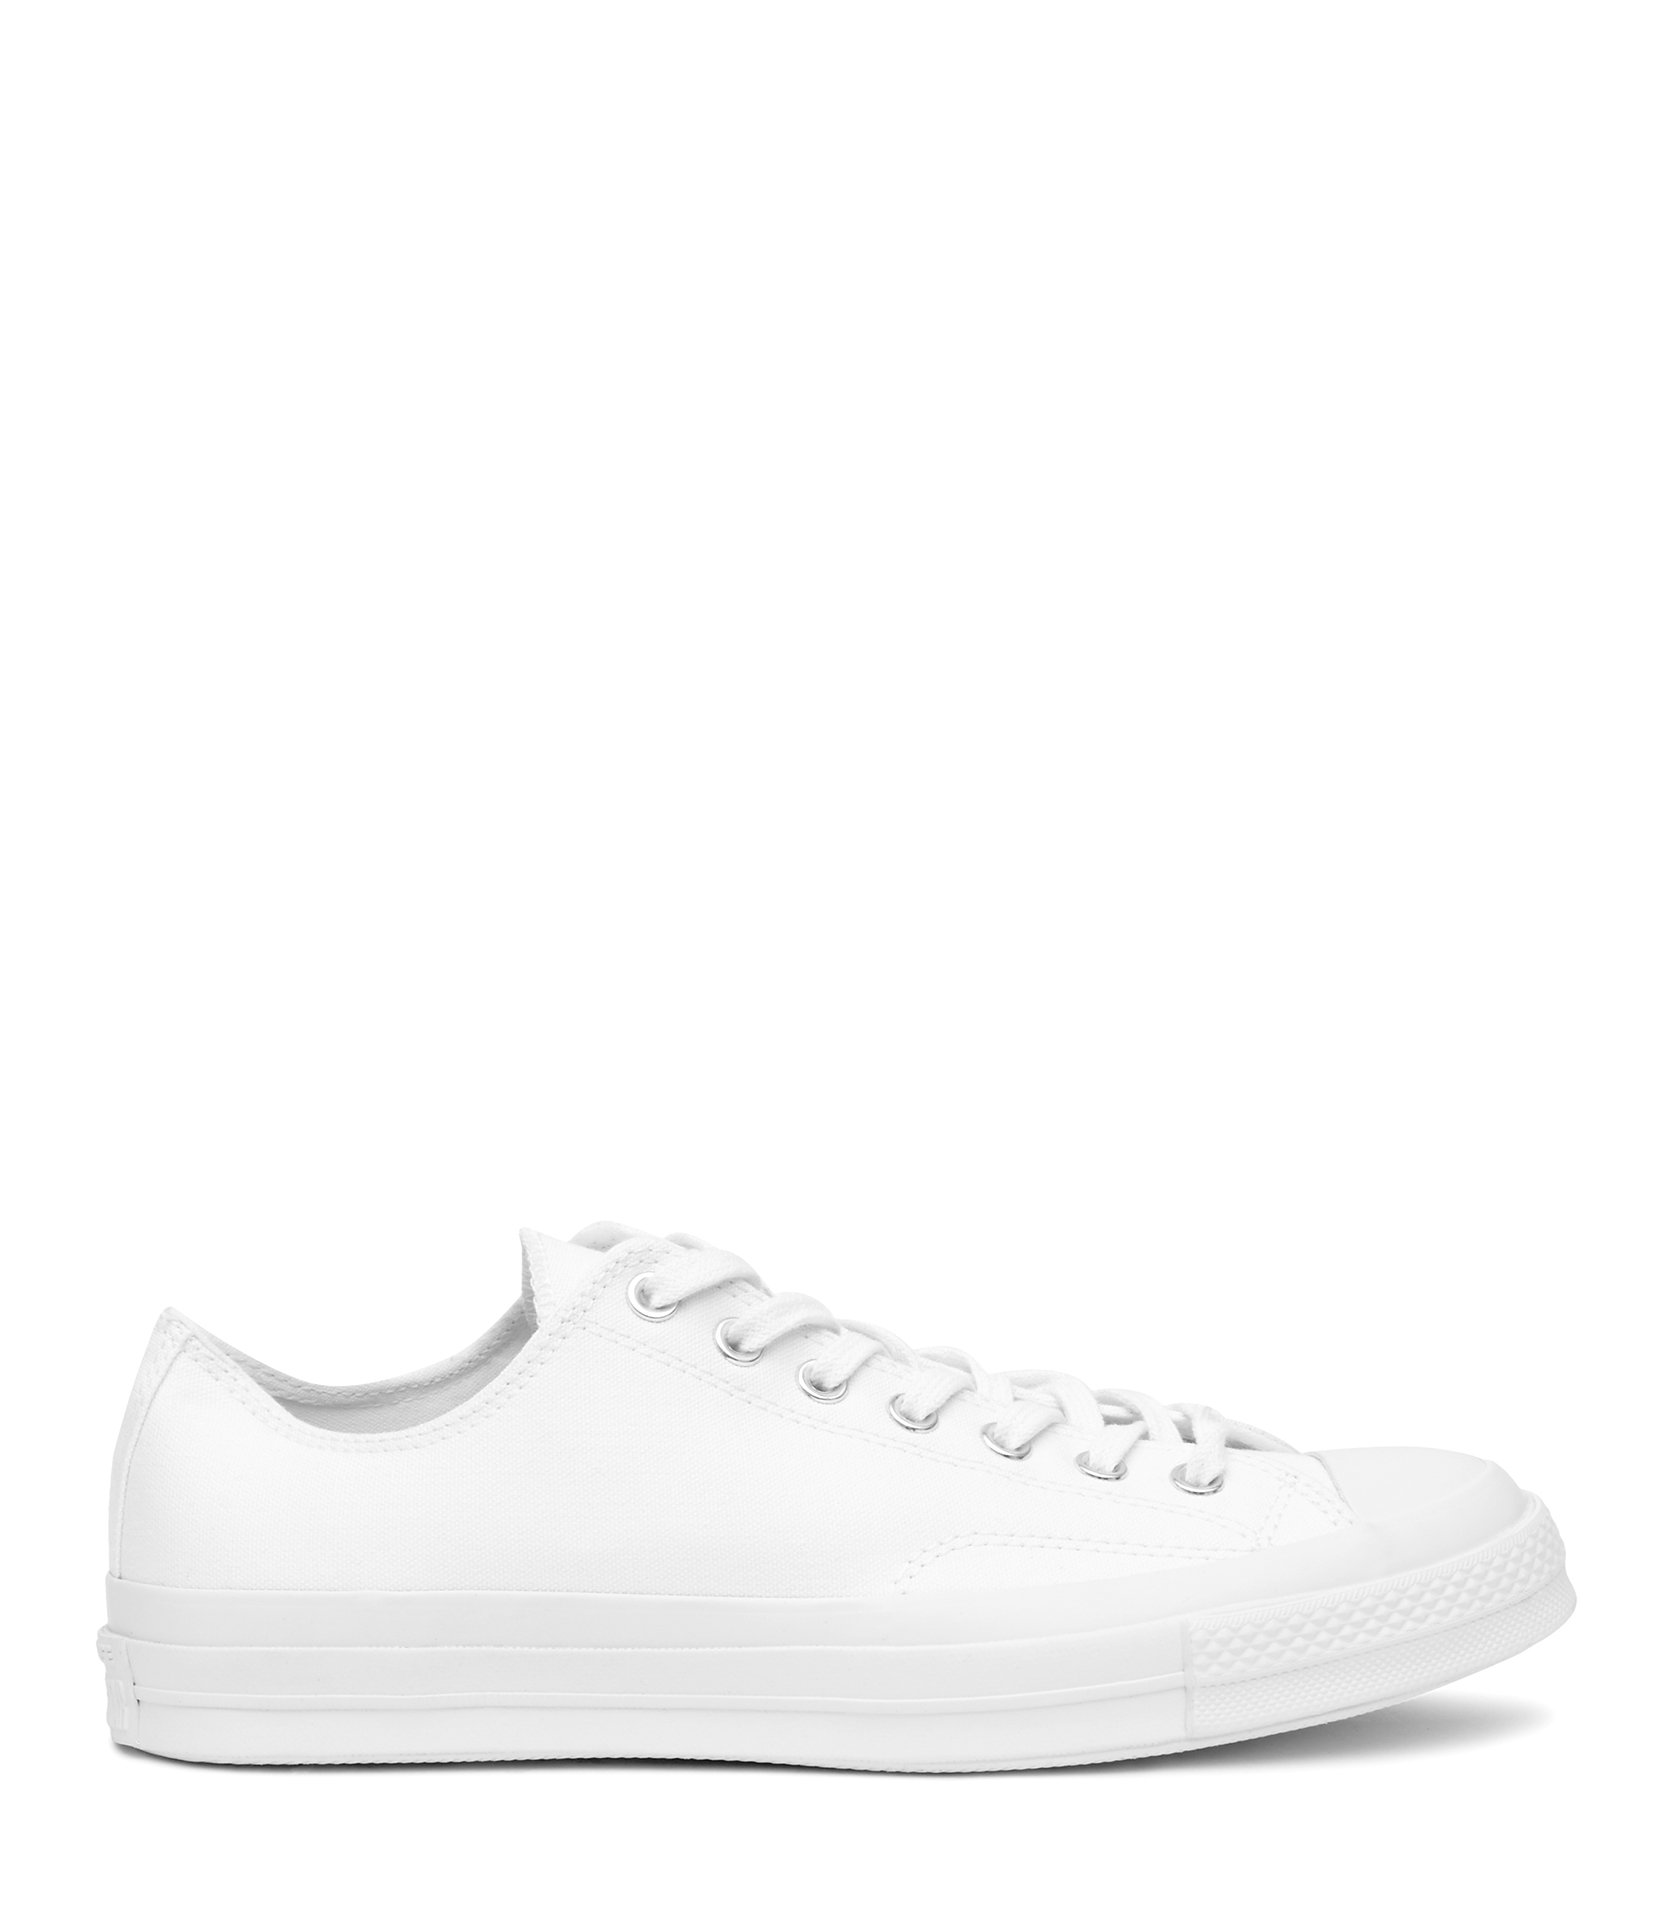 Reiss White Chuck Taylor Chuck Taylor Sneakers